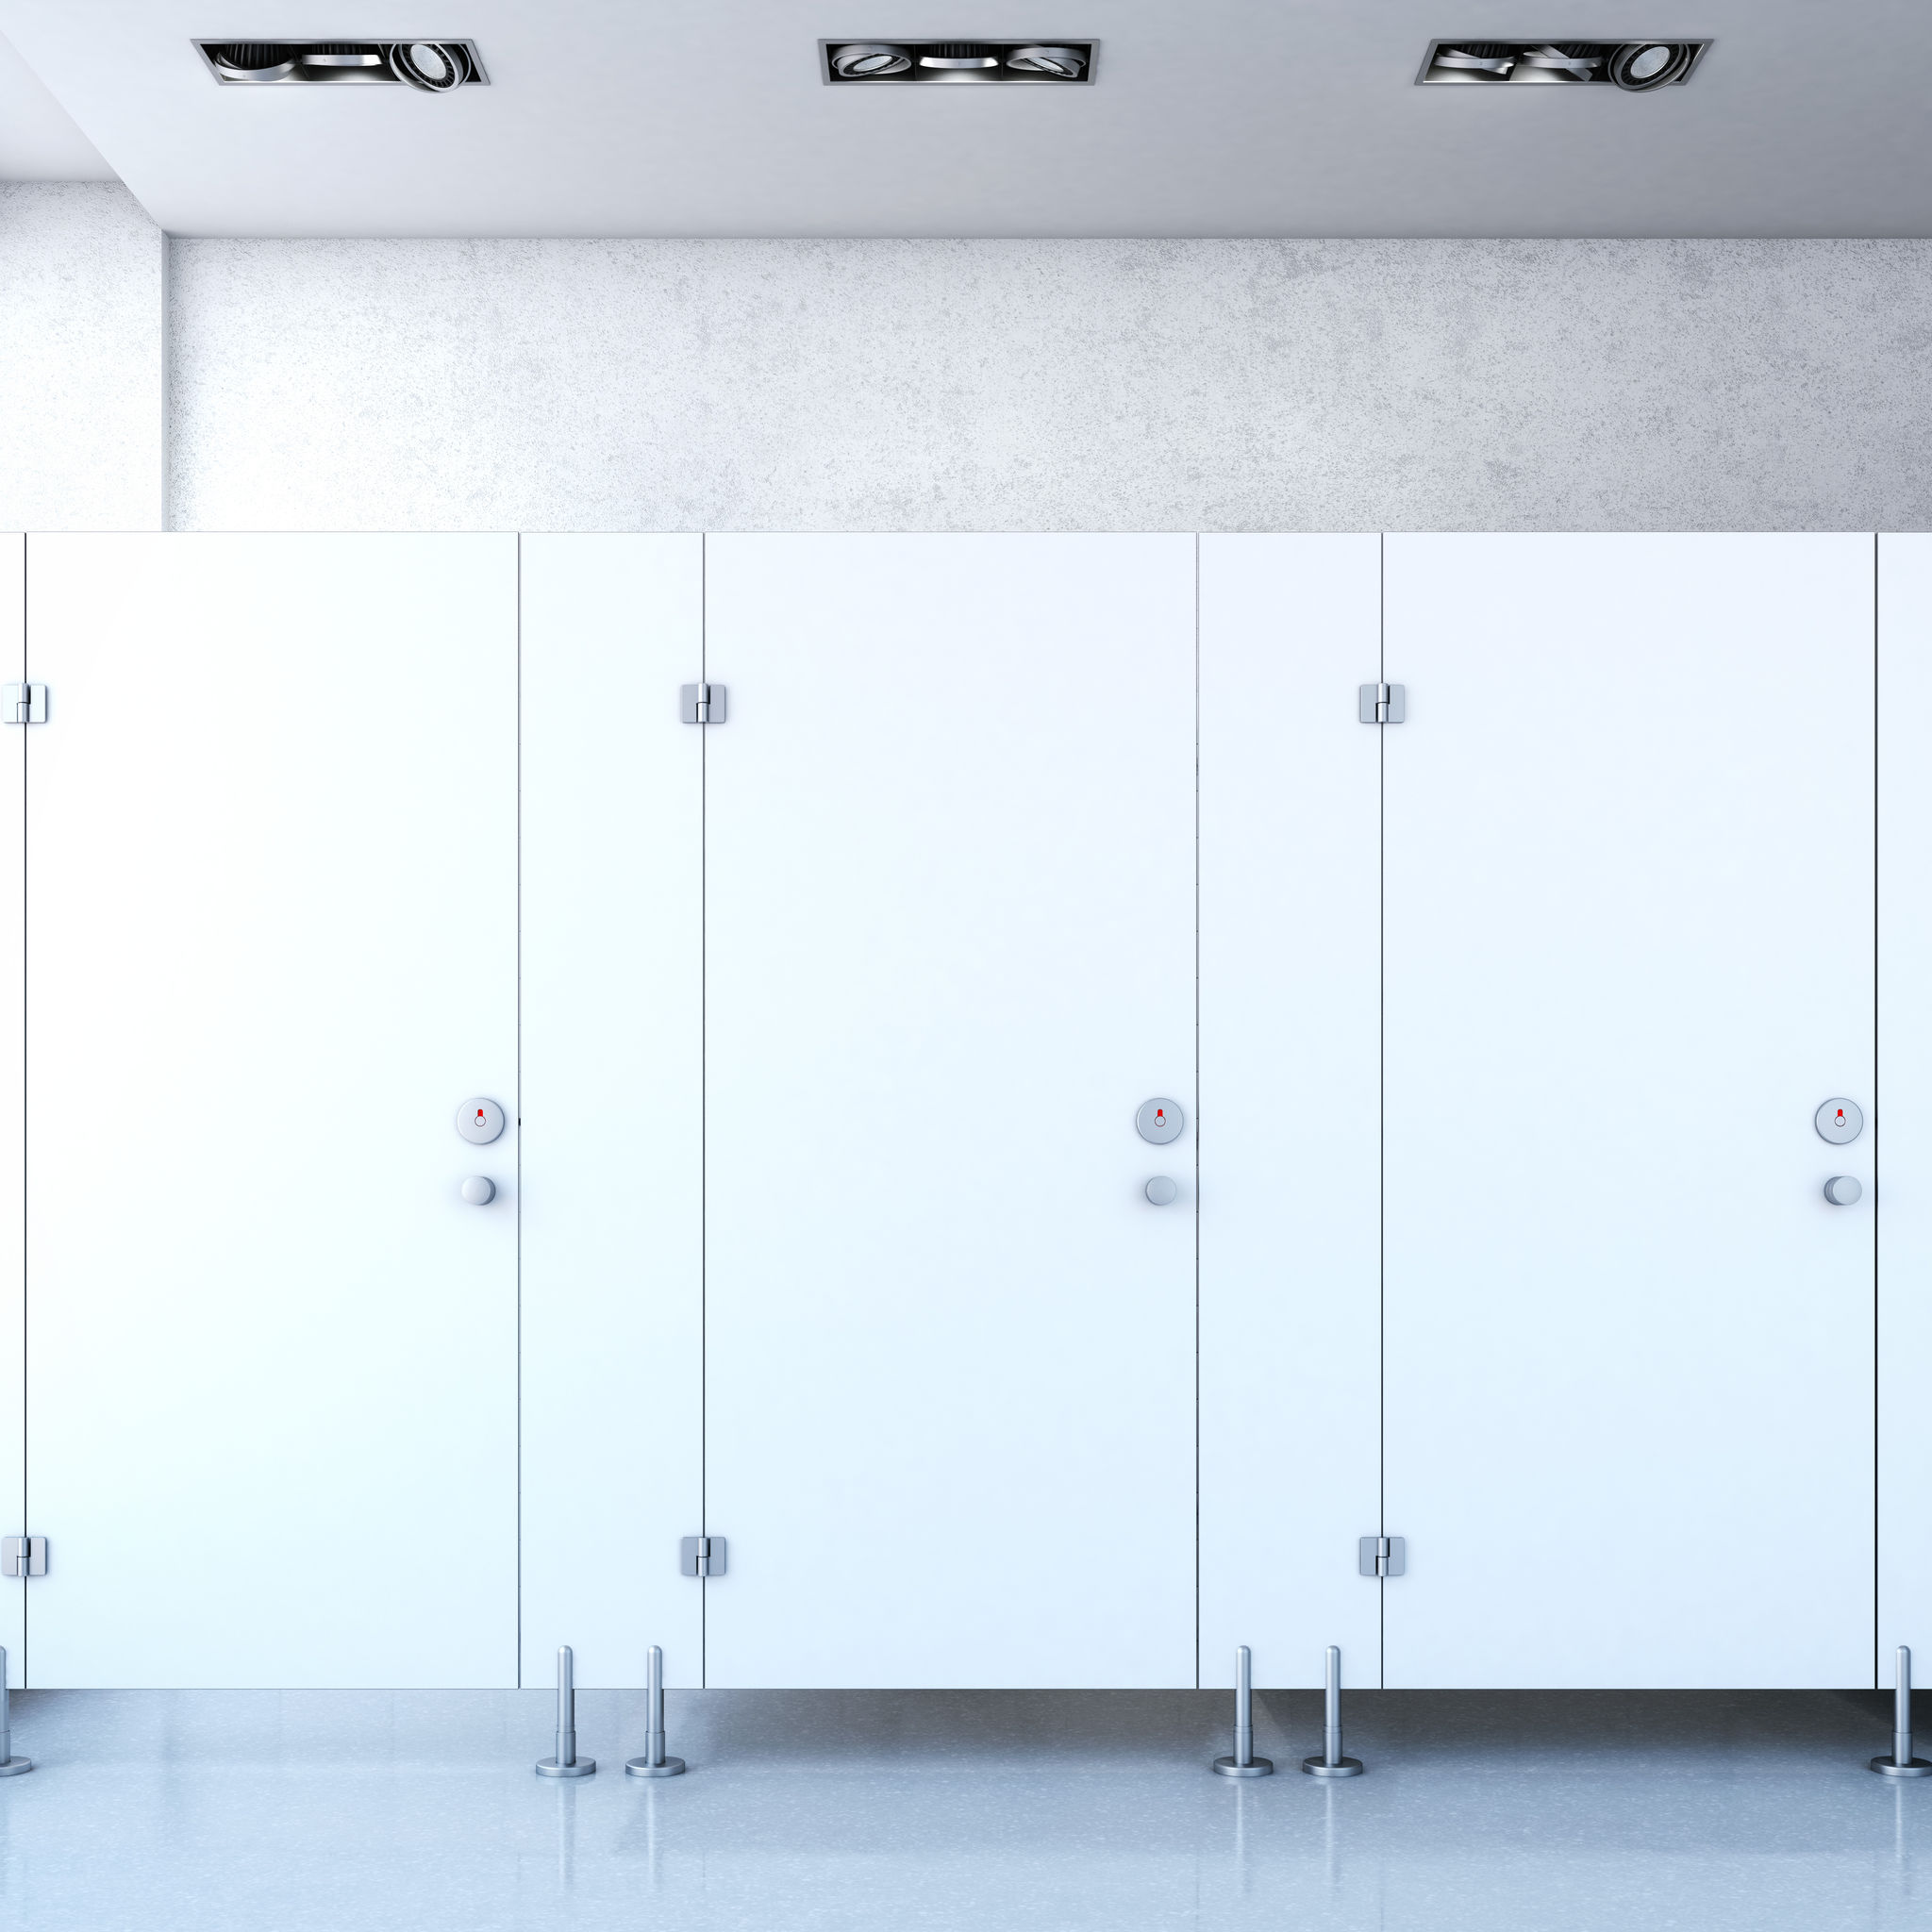 how to get contracts to clean office buildings